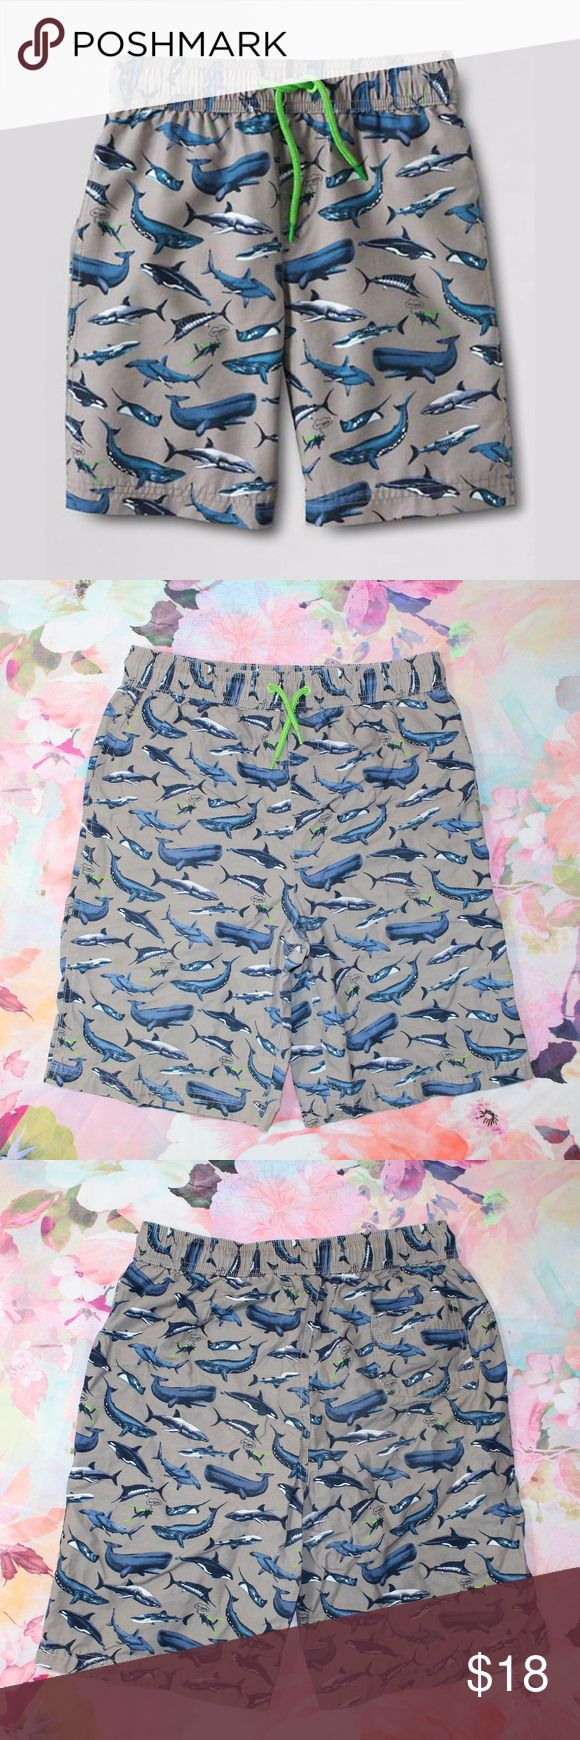 Lands' End Kid's Shark Whale Print Swim Trunks Lands' End Kids Novelty Print Aquatic Life Swim Trunks Excellent, gently loved condition. No holes, stains, or other flaws, although inside tag is marked with sharpie. Fun print has different types of sharks and whales accompanied by a quite nervous diver.... Size XL  My bundle discount is 15% off 2+!! Feel free to ask any questions, additional measurements or photos.  Please submit offers through the offer button Lands' End Swim Swim Trunks